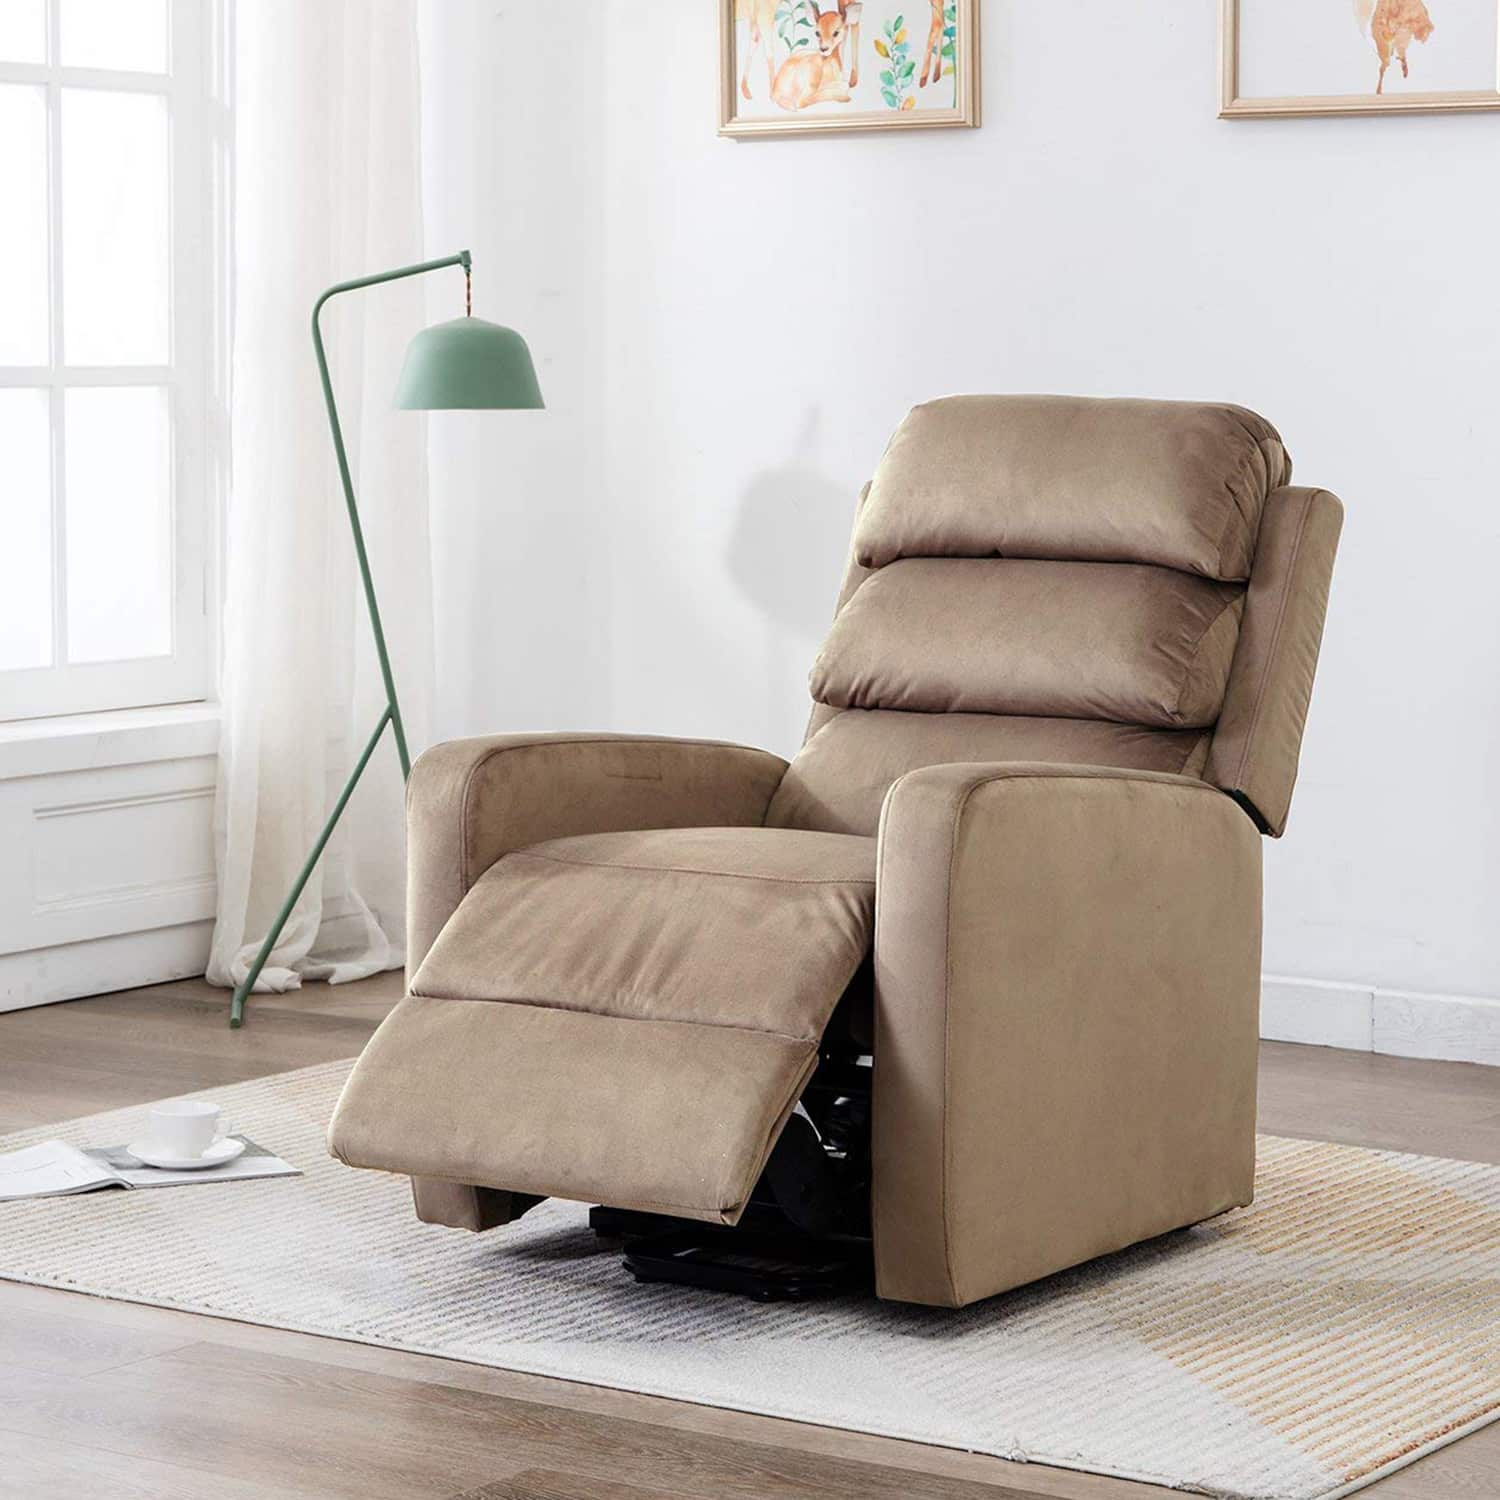 Lift Armchair Top 10 Best Recliner Chairs In 2019 Swivel Recliner Chairs Reviews